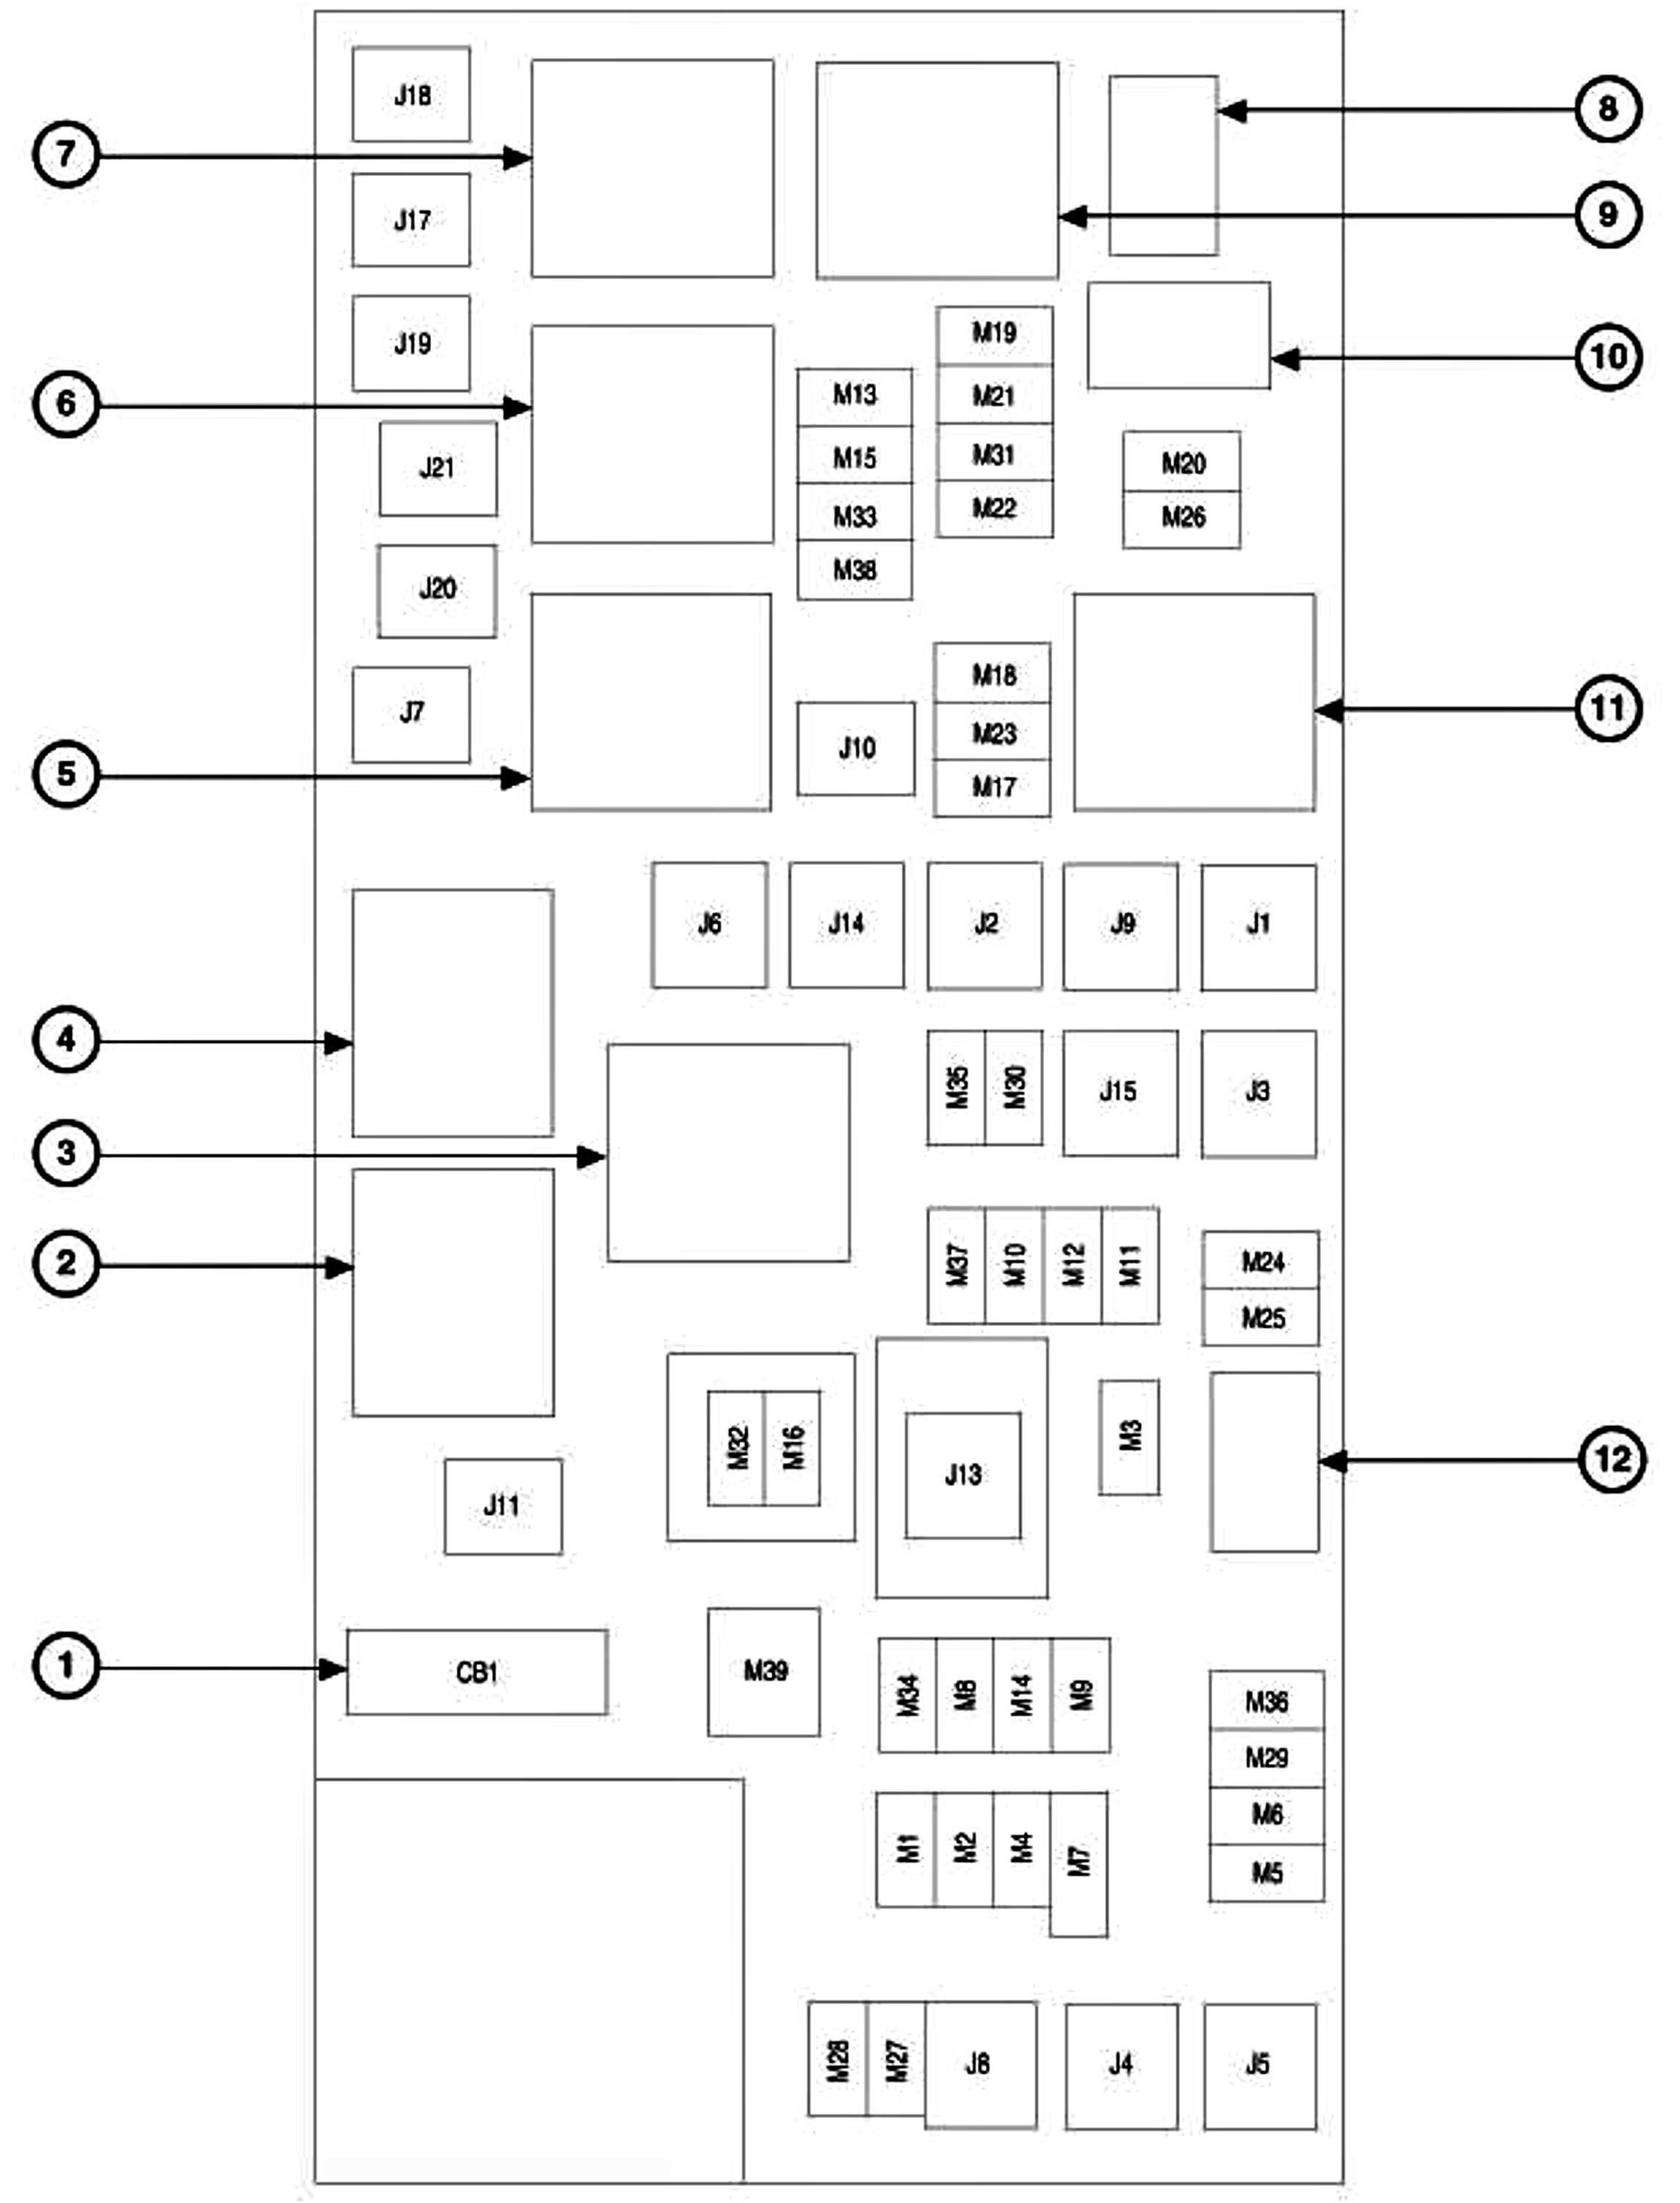 f65dad757704258fddc82721f010e9f2 2006 jeep commander fuse box diagram jpeg carimagescolay 2008 jeep commander fuse box layout at crackthecode.co